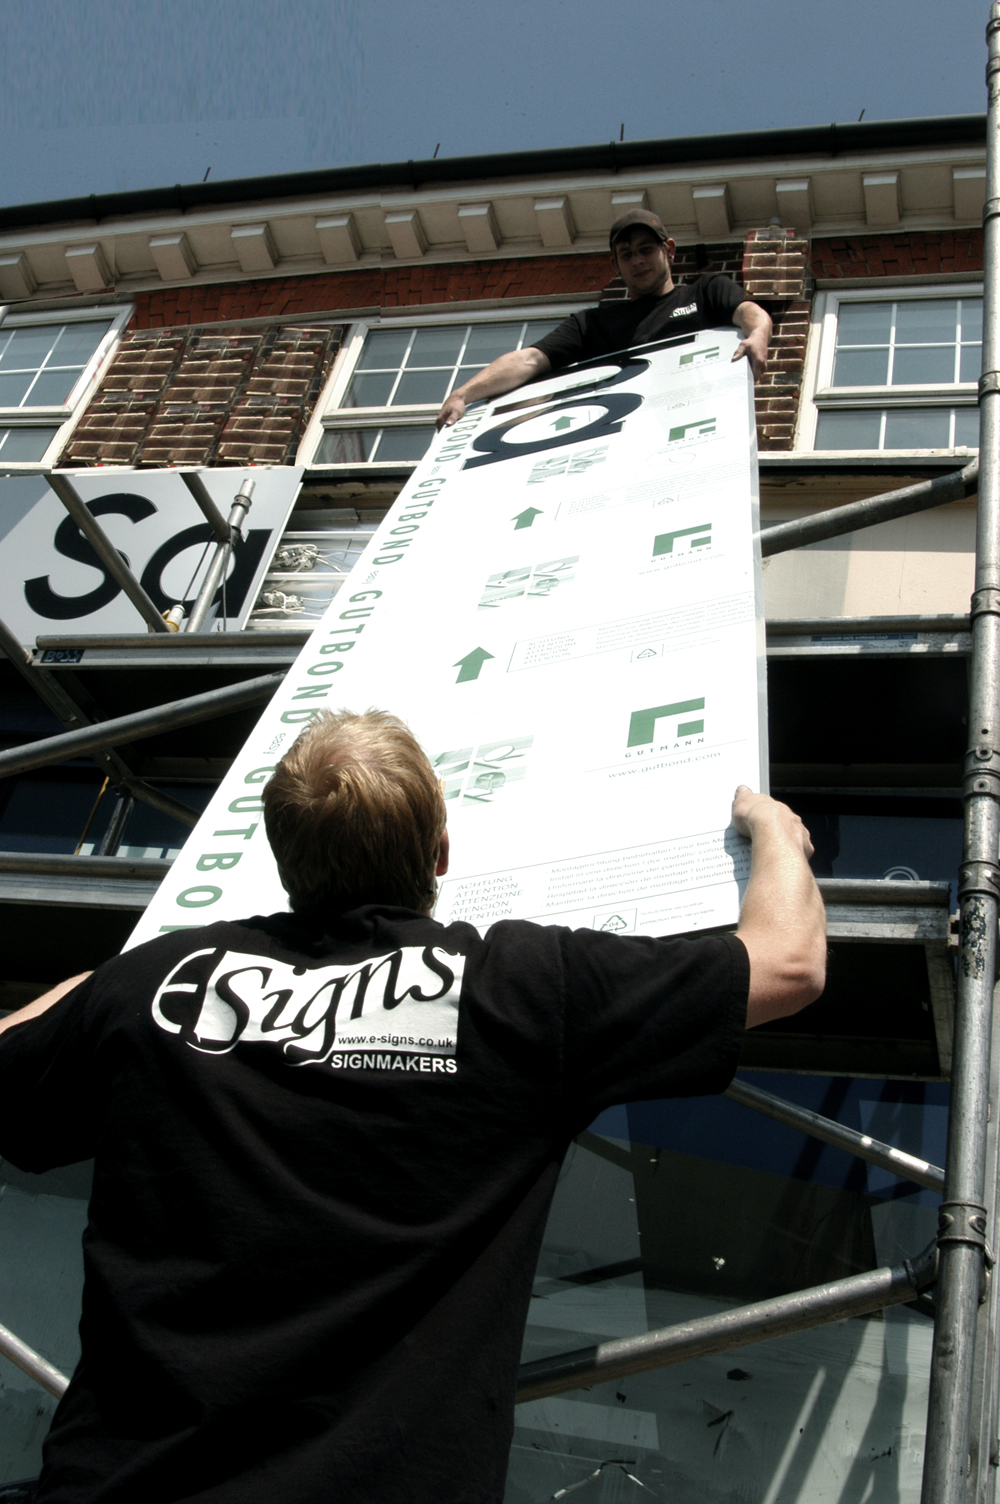 Internal Signs Illuminated Fascia E Signs ® www.e-signs.co.uk sign installers in London